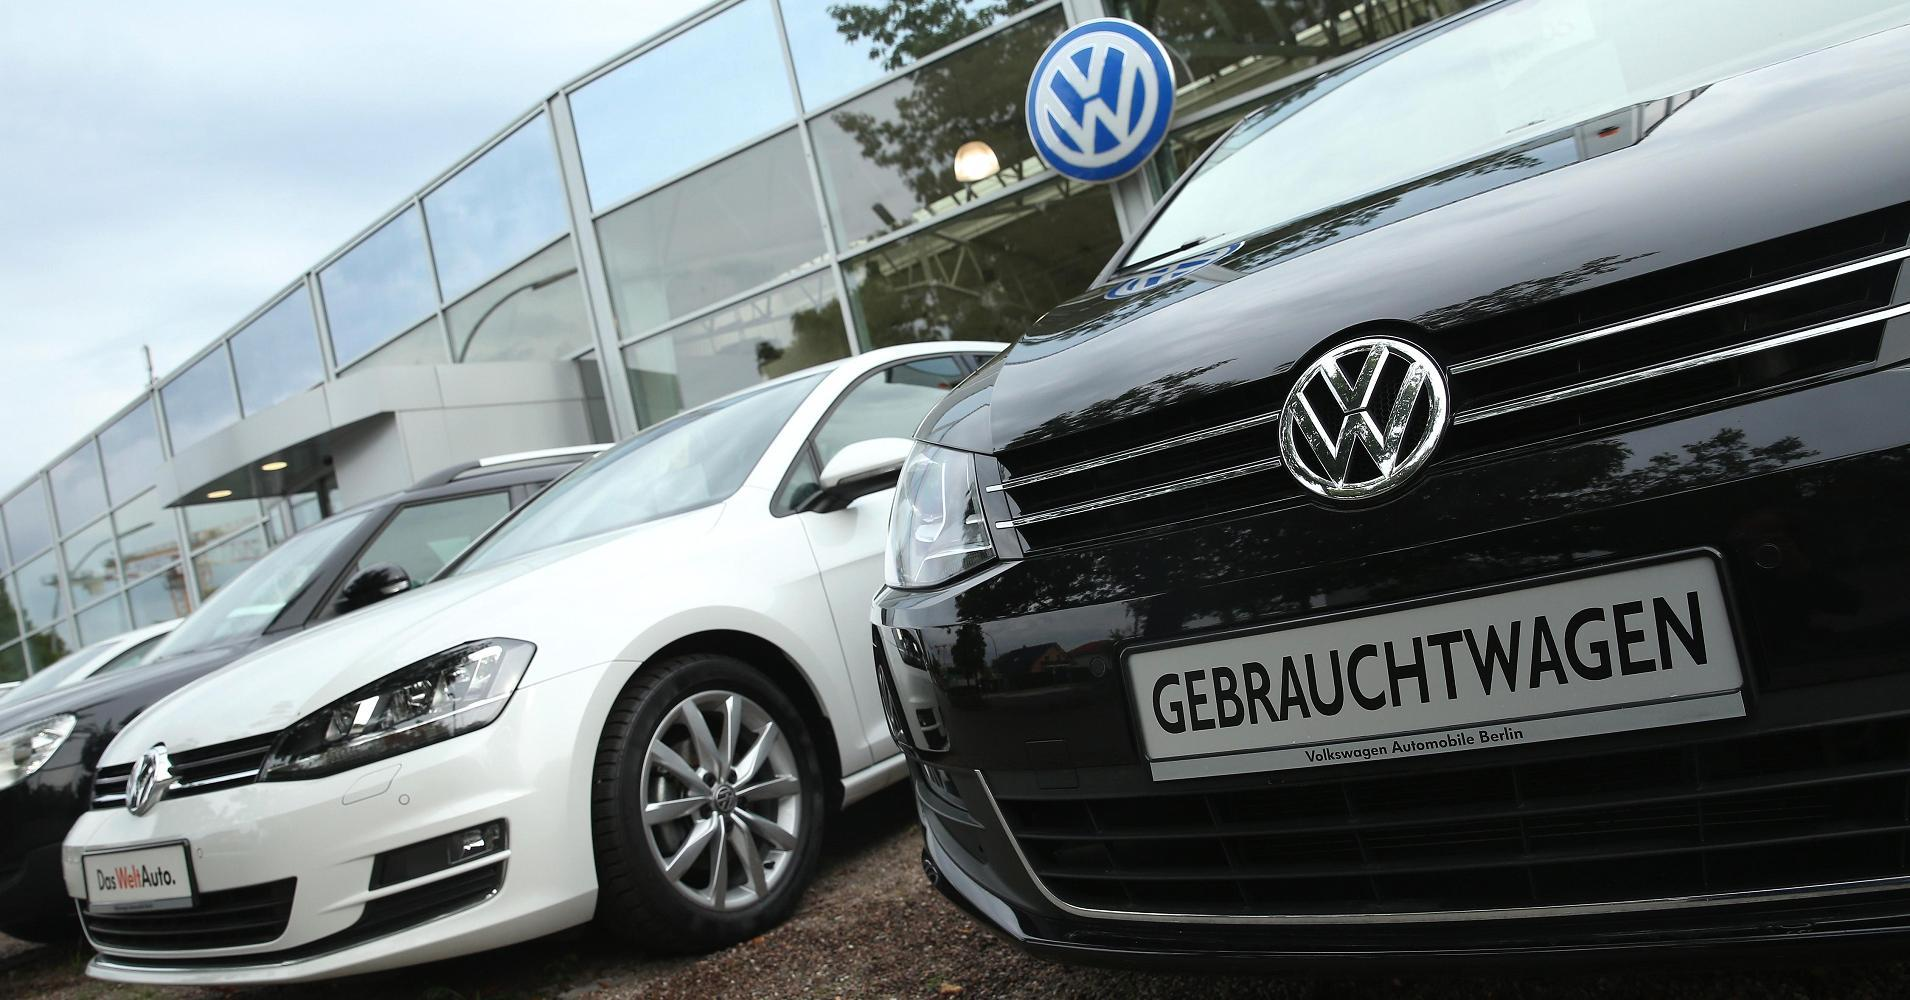 Four carmakers join emissions rigging list: Guardian